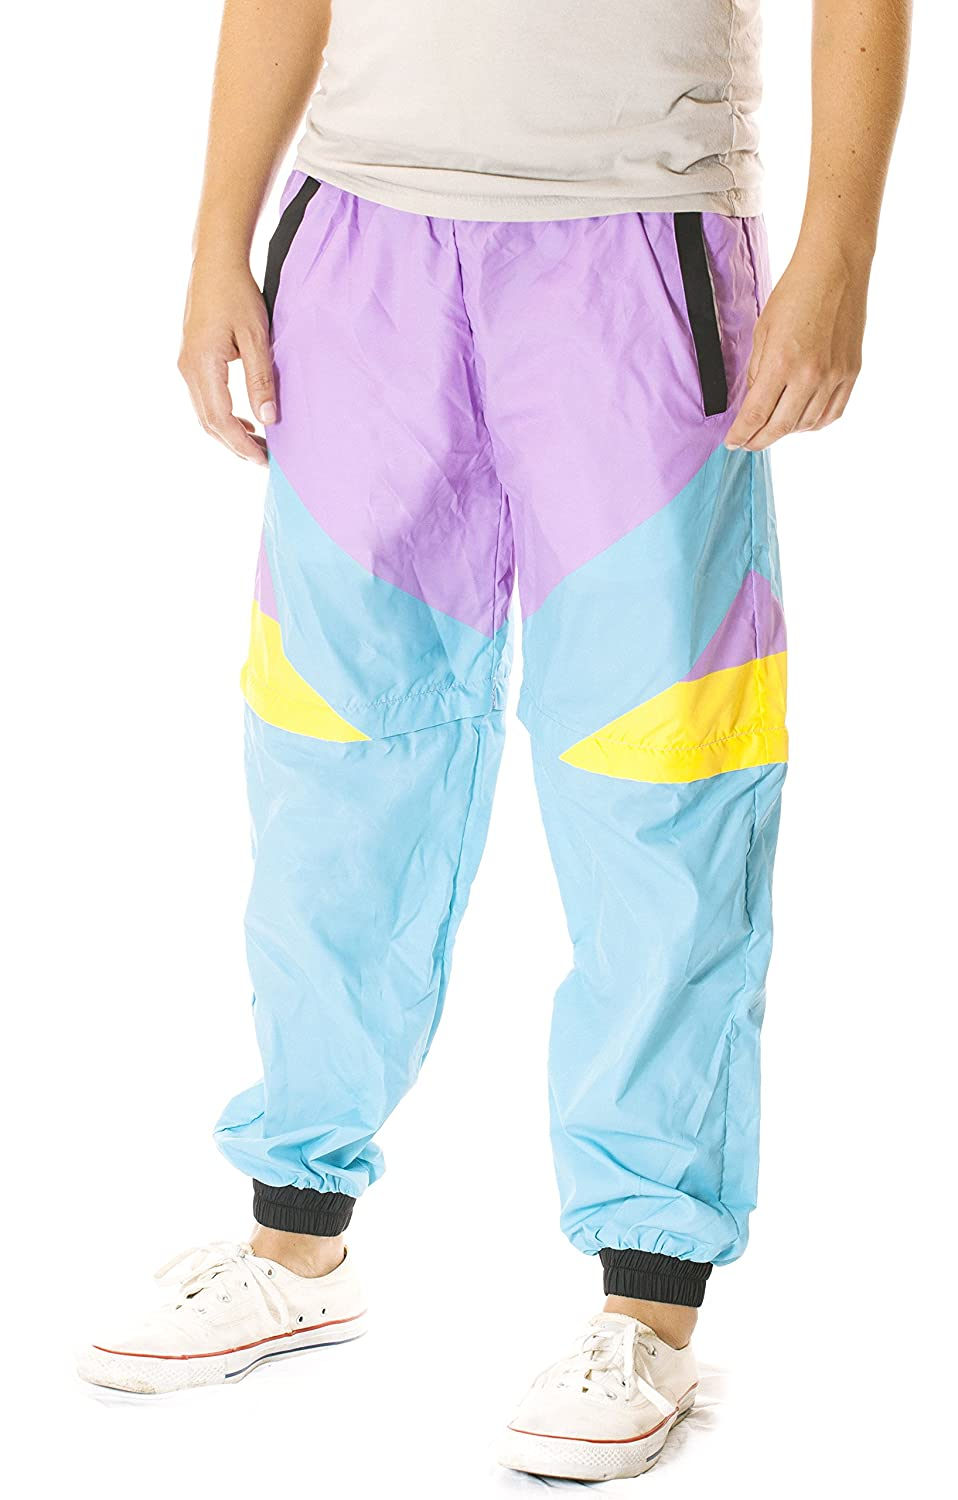 Men's Vintage Pants, Trousers, Jeans, Overalls Funny Guy Mugs 80s & 90s Retro Neon Windbreaker Pants - Convertible Shorts Or Pants $46.99 AT vintagedancer.com